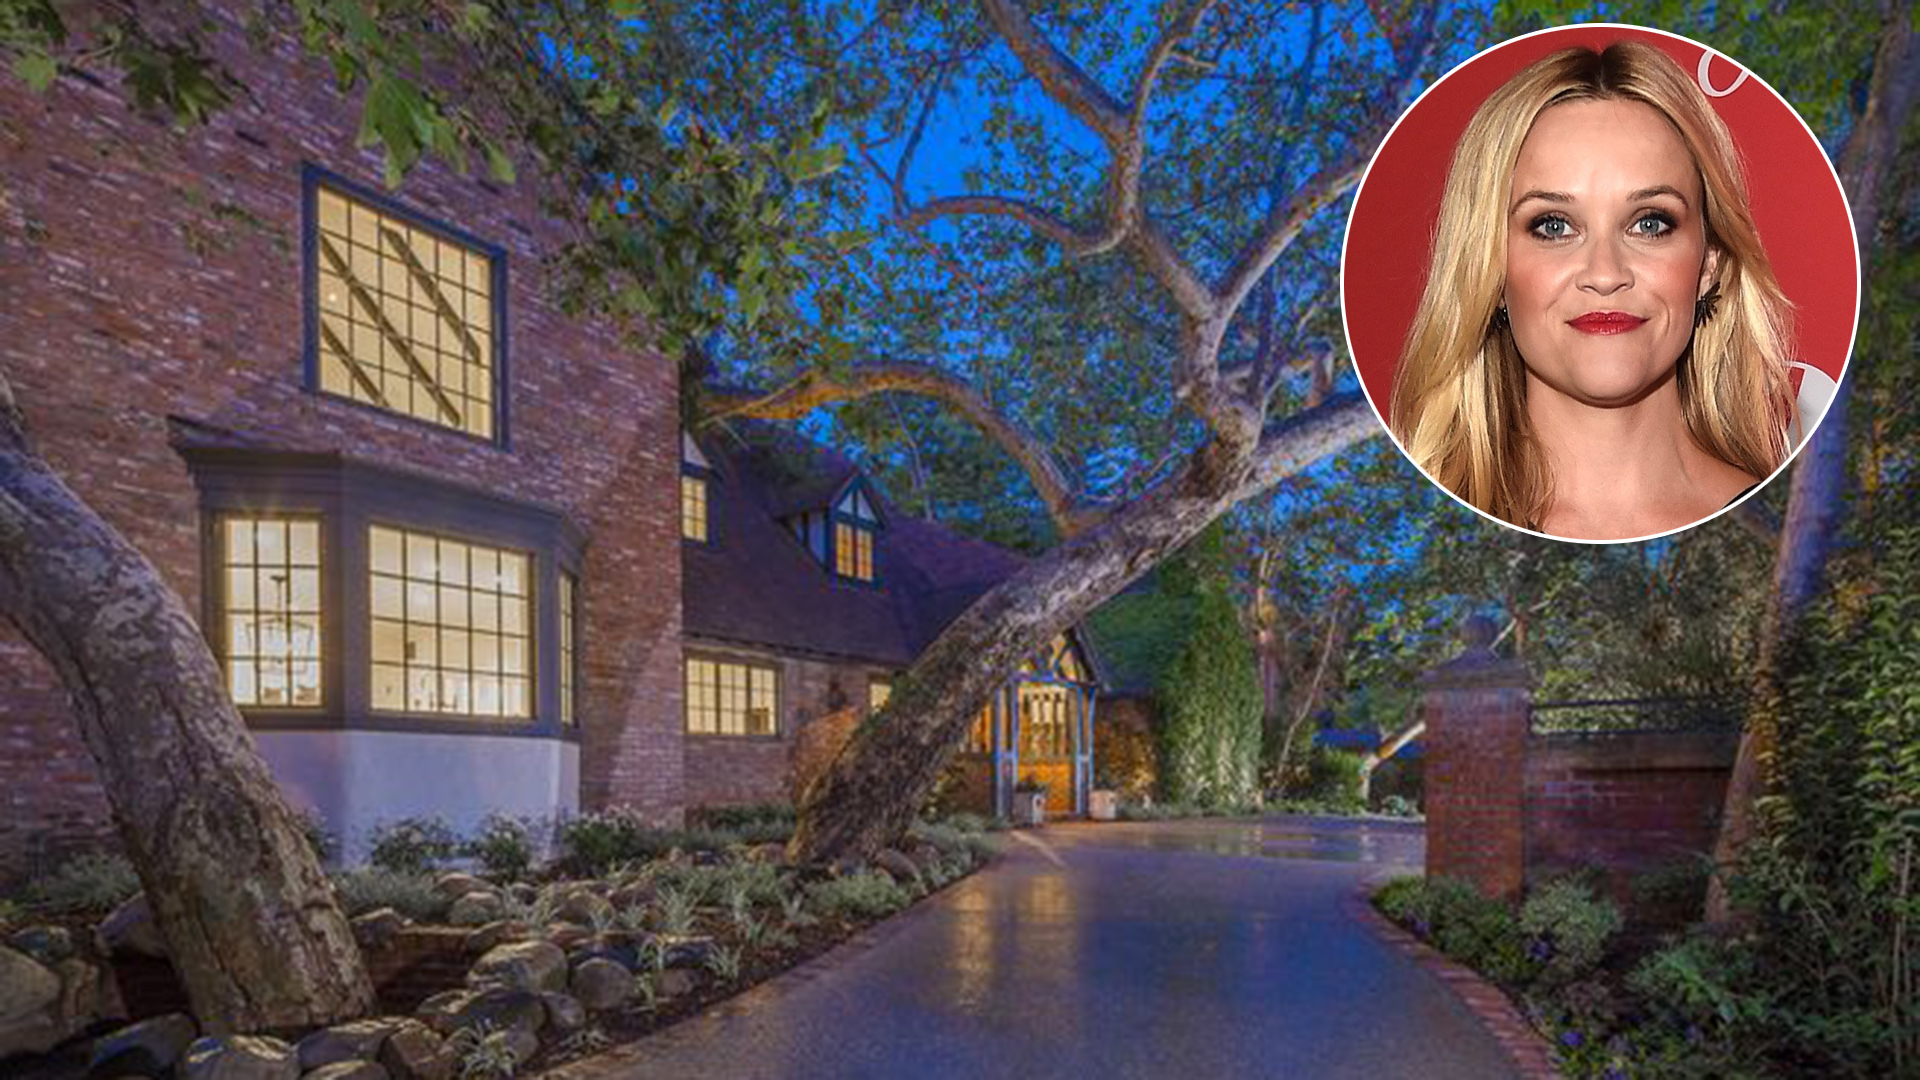 Reese Witherspoon Ryan Phillippes Ex Bel Air House For